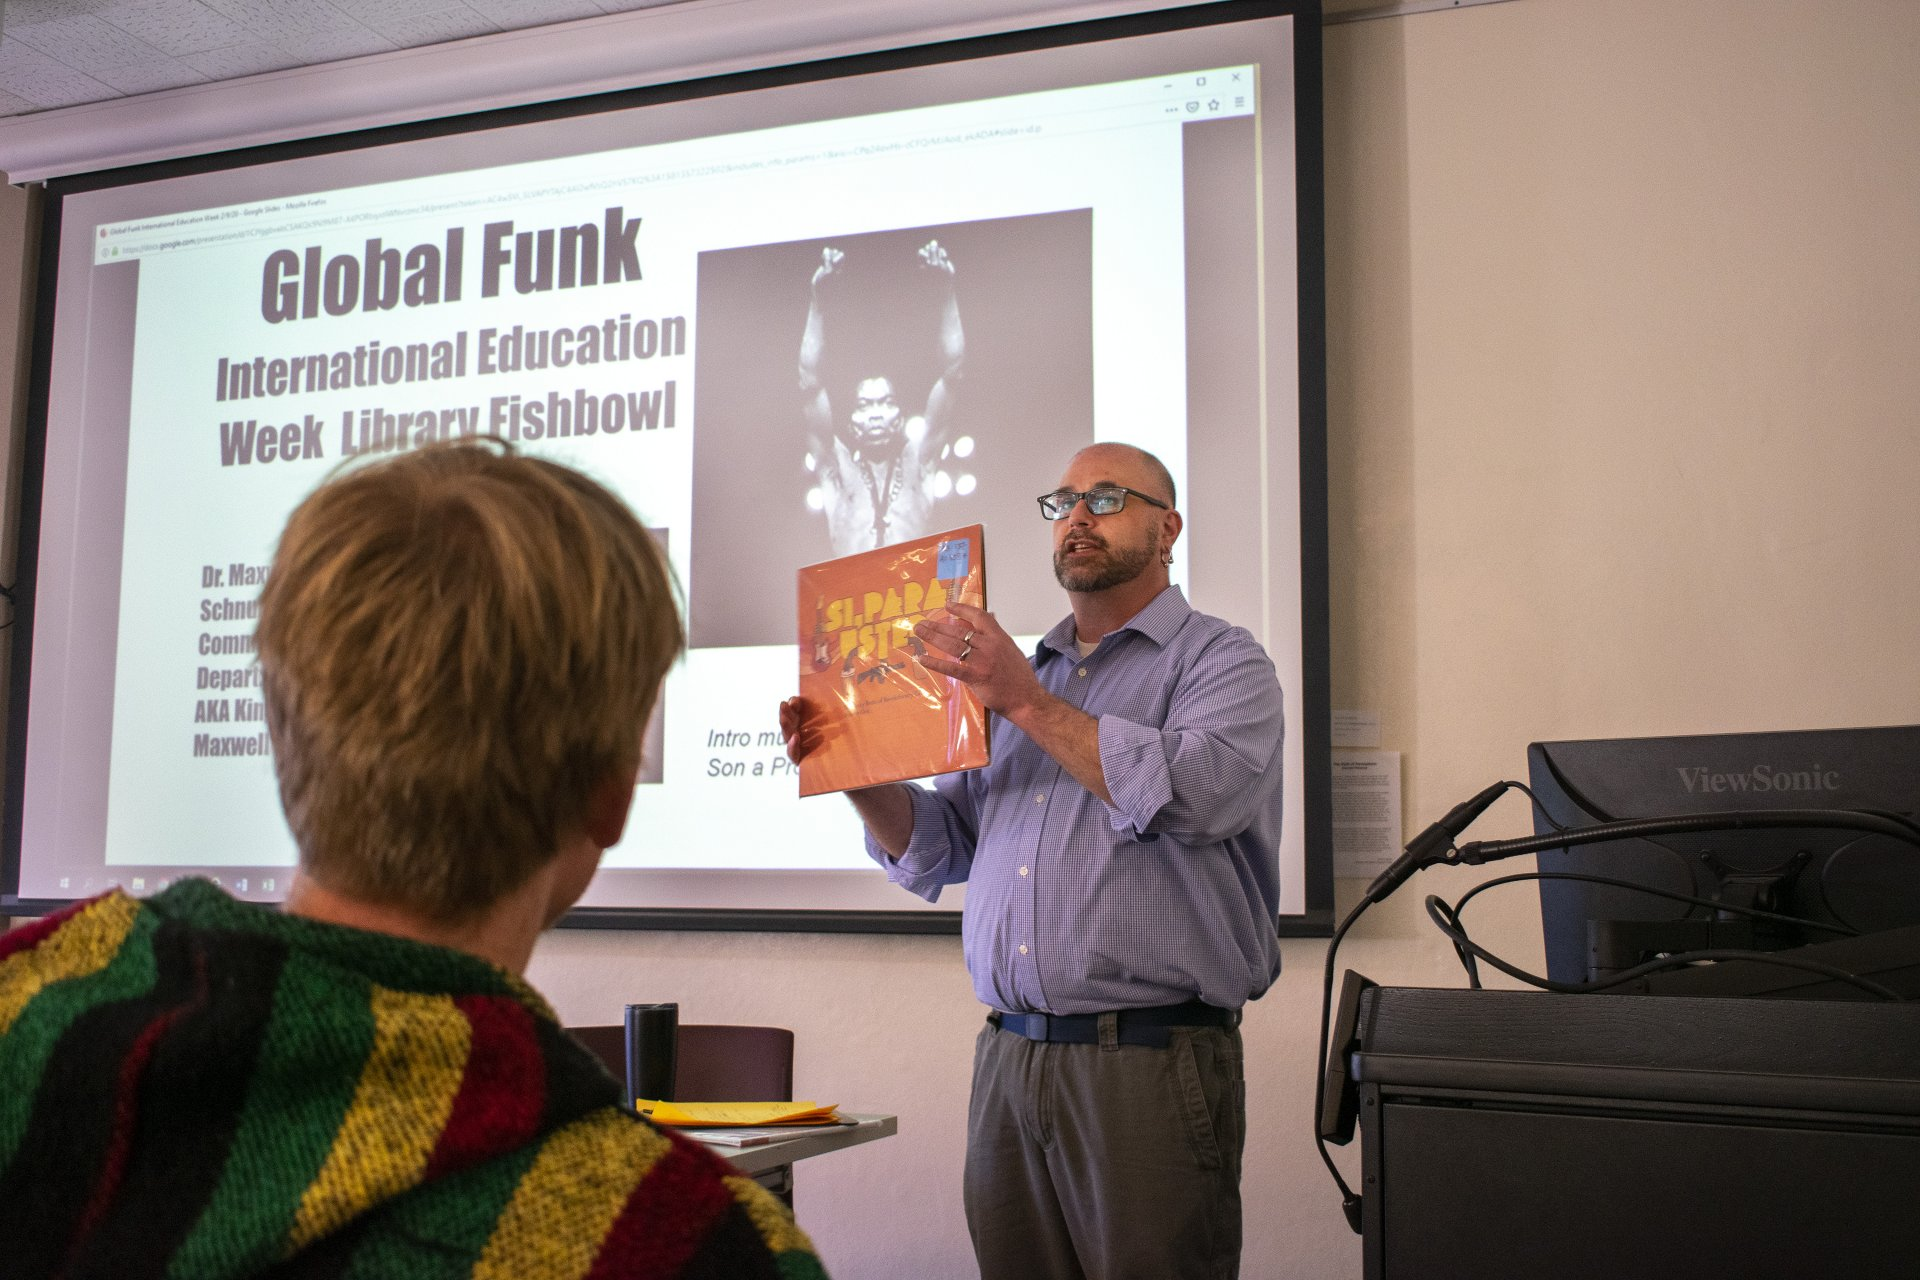 Local DJ and HSU Communication Department Chair Maxwell Schnurer shows off a funk album in his hour-long talk on global funk music on Feb. 10 at the HSU Library Fishbowl. Schnurer described funk as a combination of revolutionary practice and a desire to get down. | Photo by James Wilde